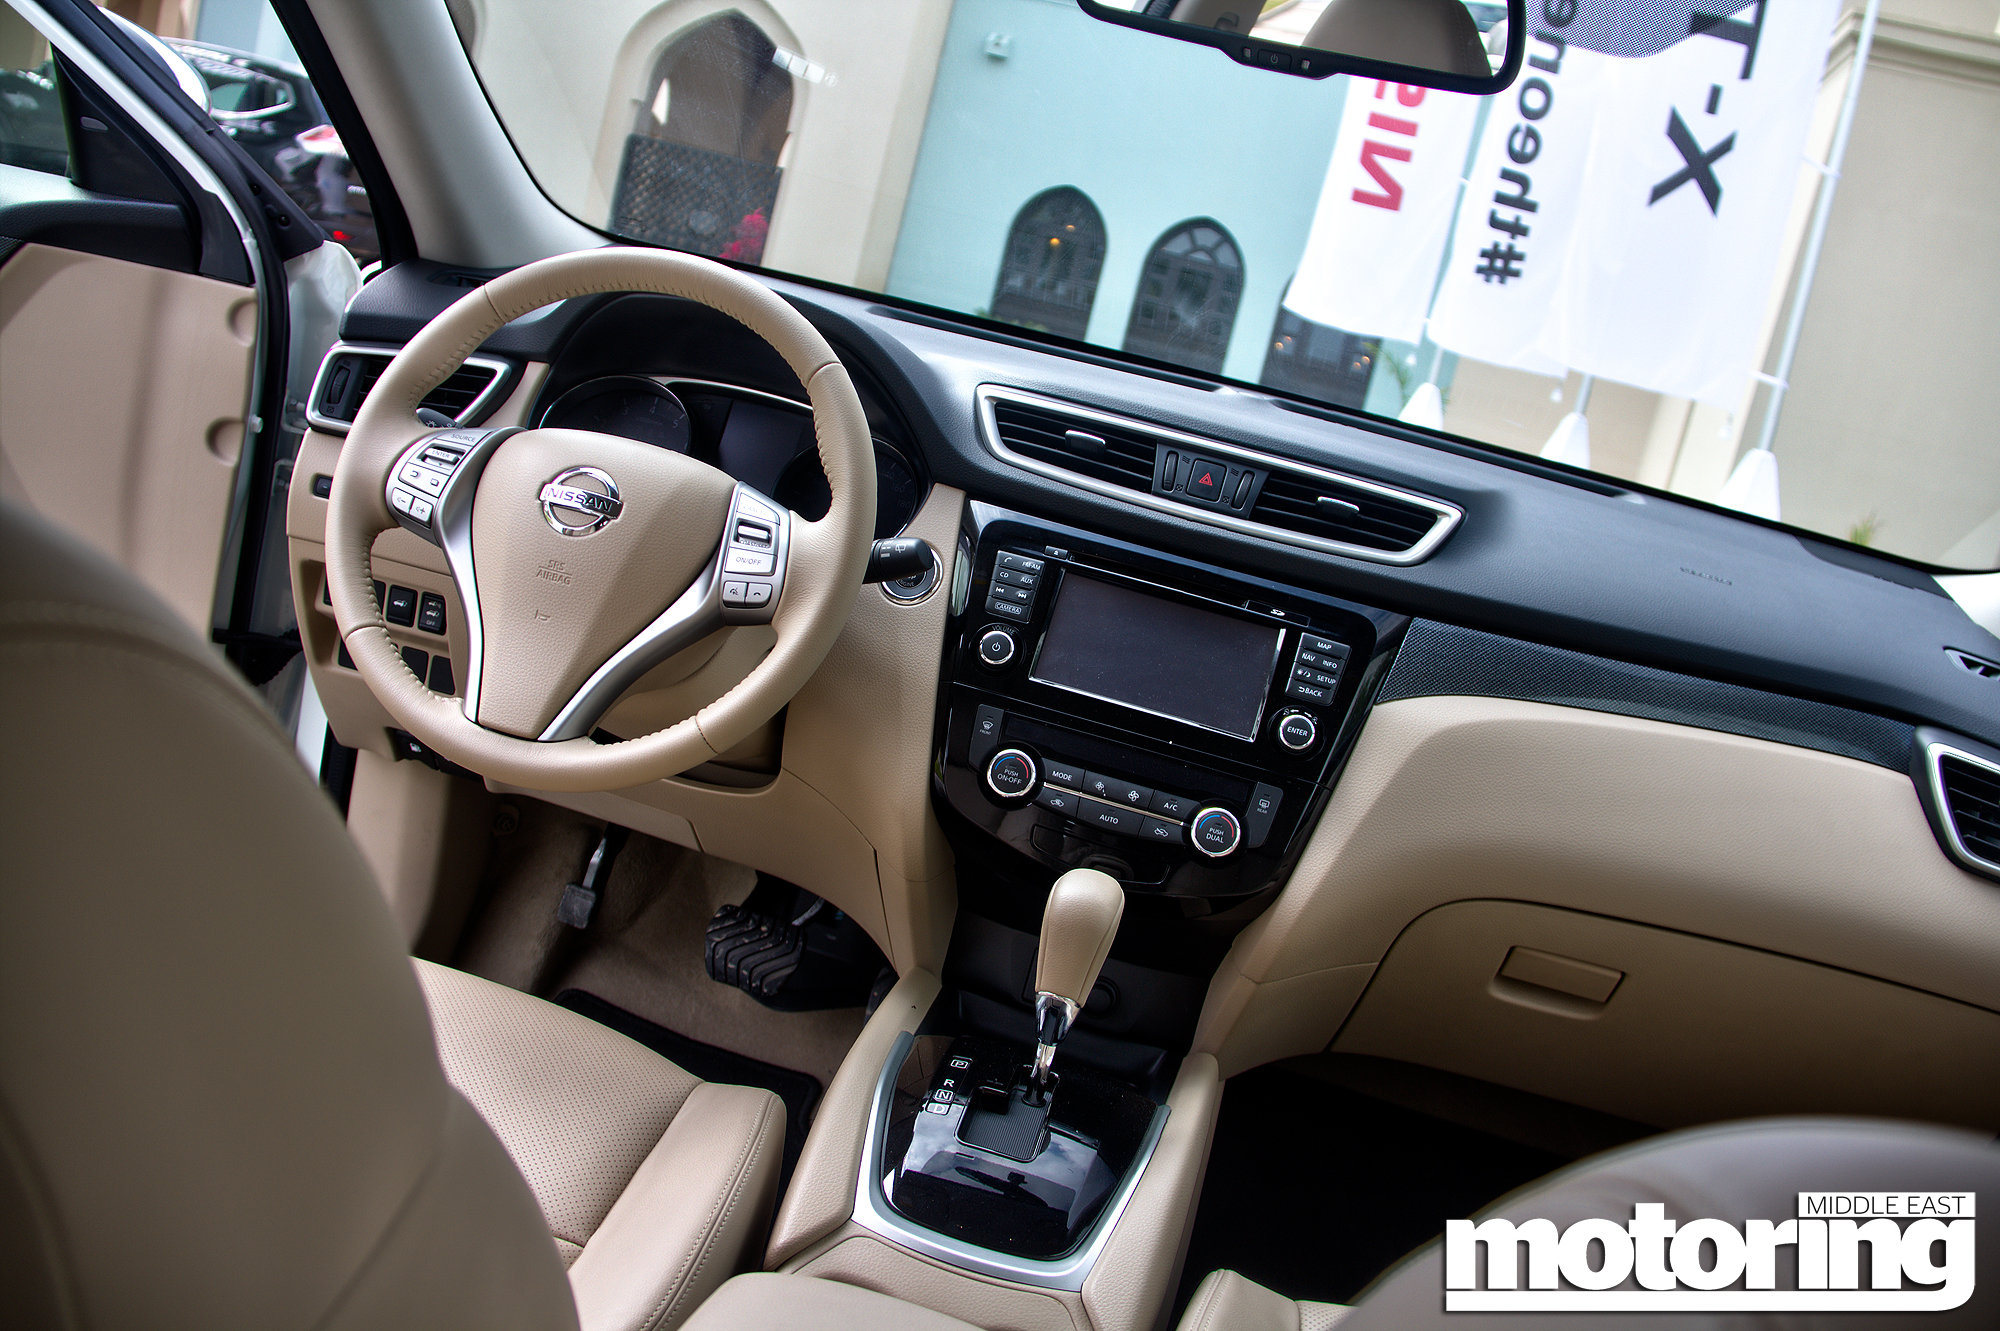 nissan  trail reviewmotoring middle east car news reviews  buying guides